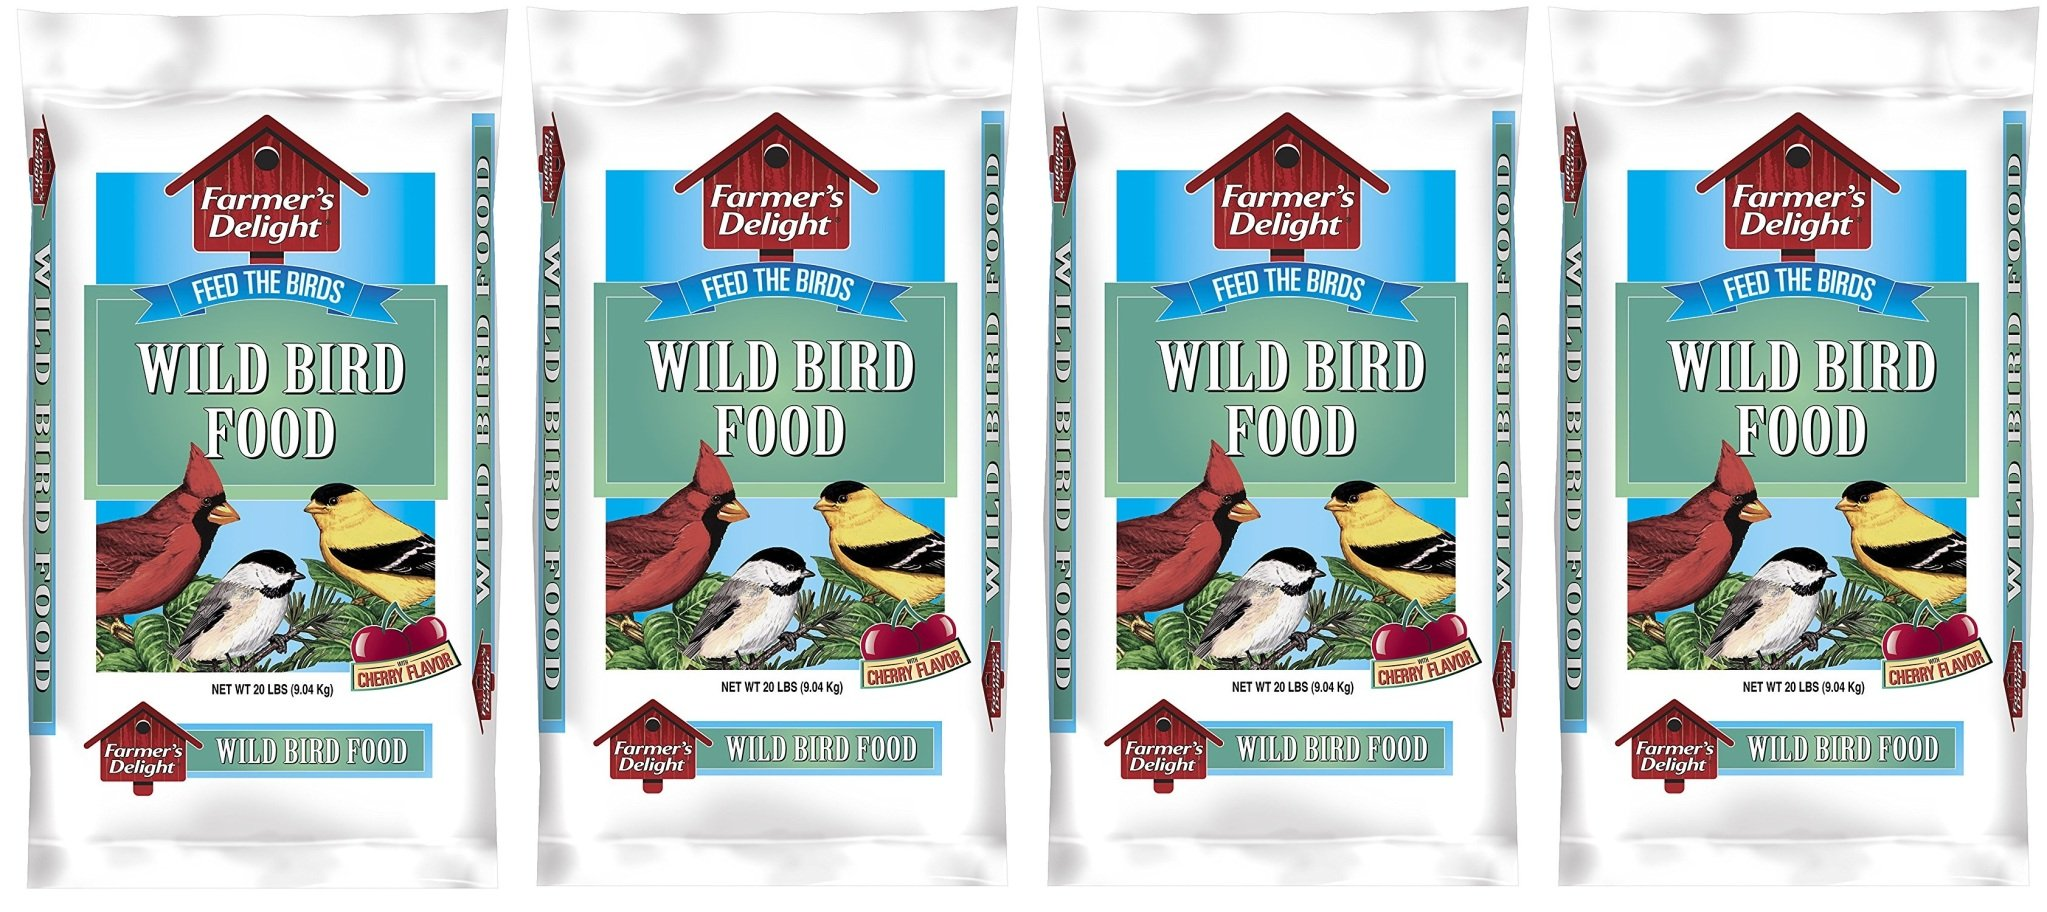 Wagners 53002 Farmers Delight Wild Bird Food, With Cherry Flavor, 20-Pound Bag, Qpwutz 4Pack (20-Pound Bag)